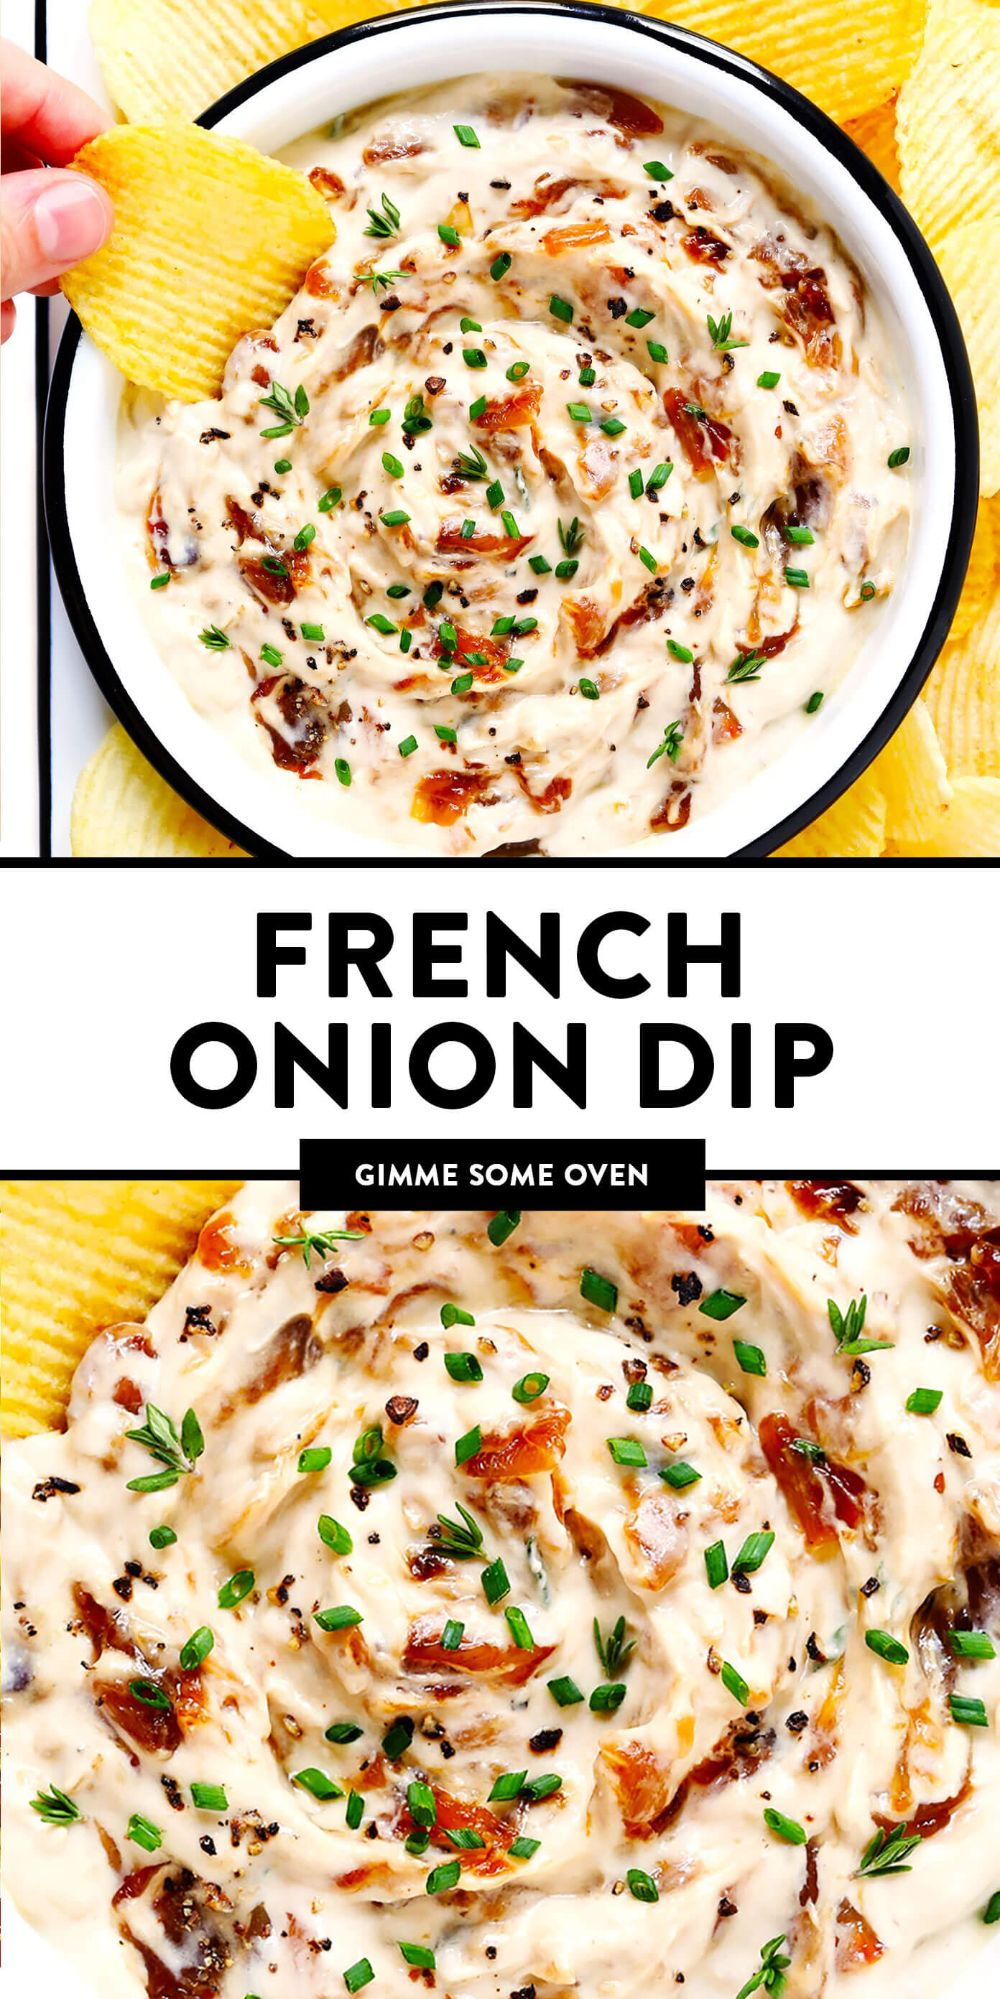 The BEST French onion dip recipe! It's creamy, savory, and a touch sweet (thanks to those delicious caramelized onions)...and downright irresistible. Serve it as a party appetizer, or use it as a spread for burgers, pizza and more! | gimmesomeoven.com #dip #appetizer #frenchonion #vegetarian #glutenfree #entertaining